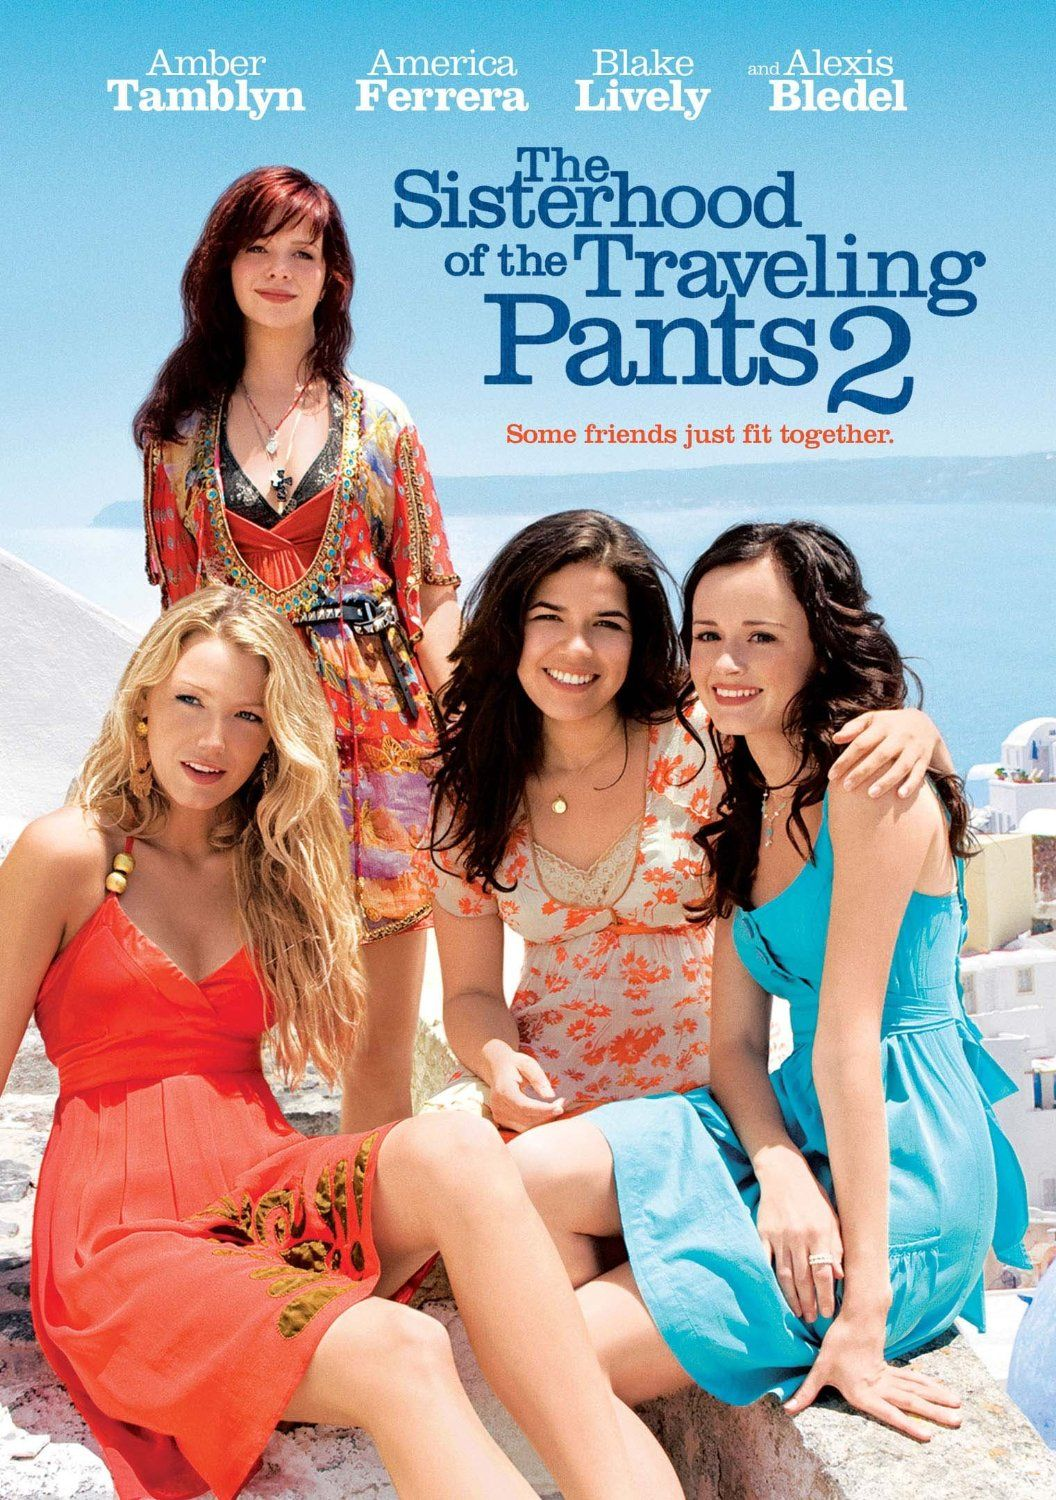 Sisterhood Of The Traveling Pants Quotes About Friendship The Sisterhood Of The Travelling Pants 2005Selectedwww